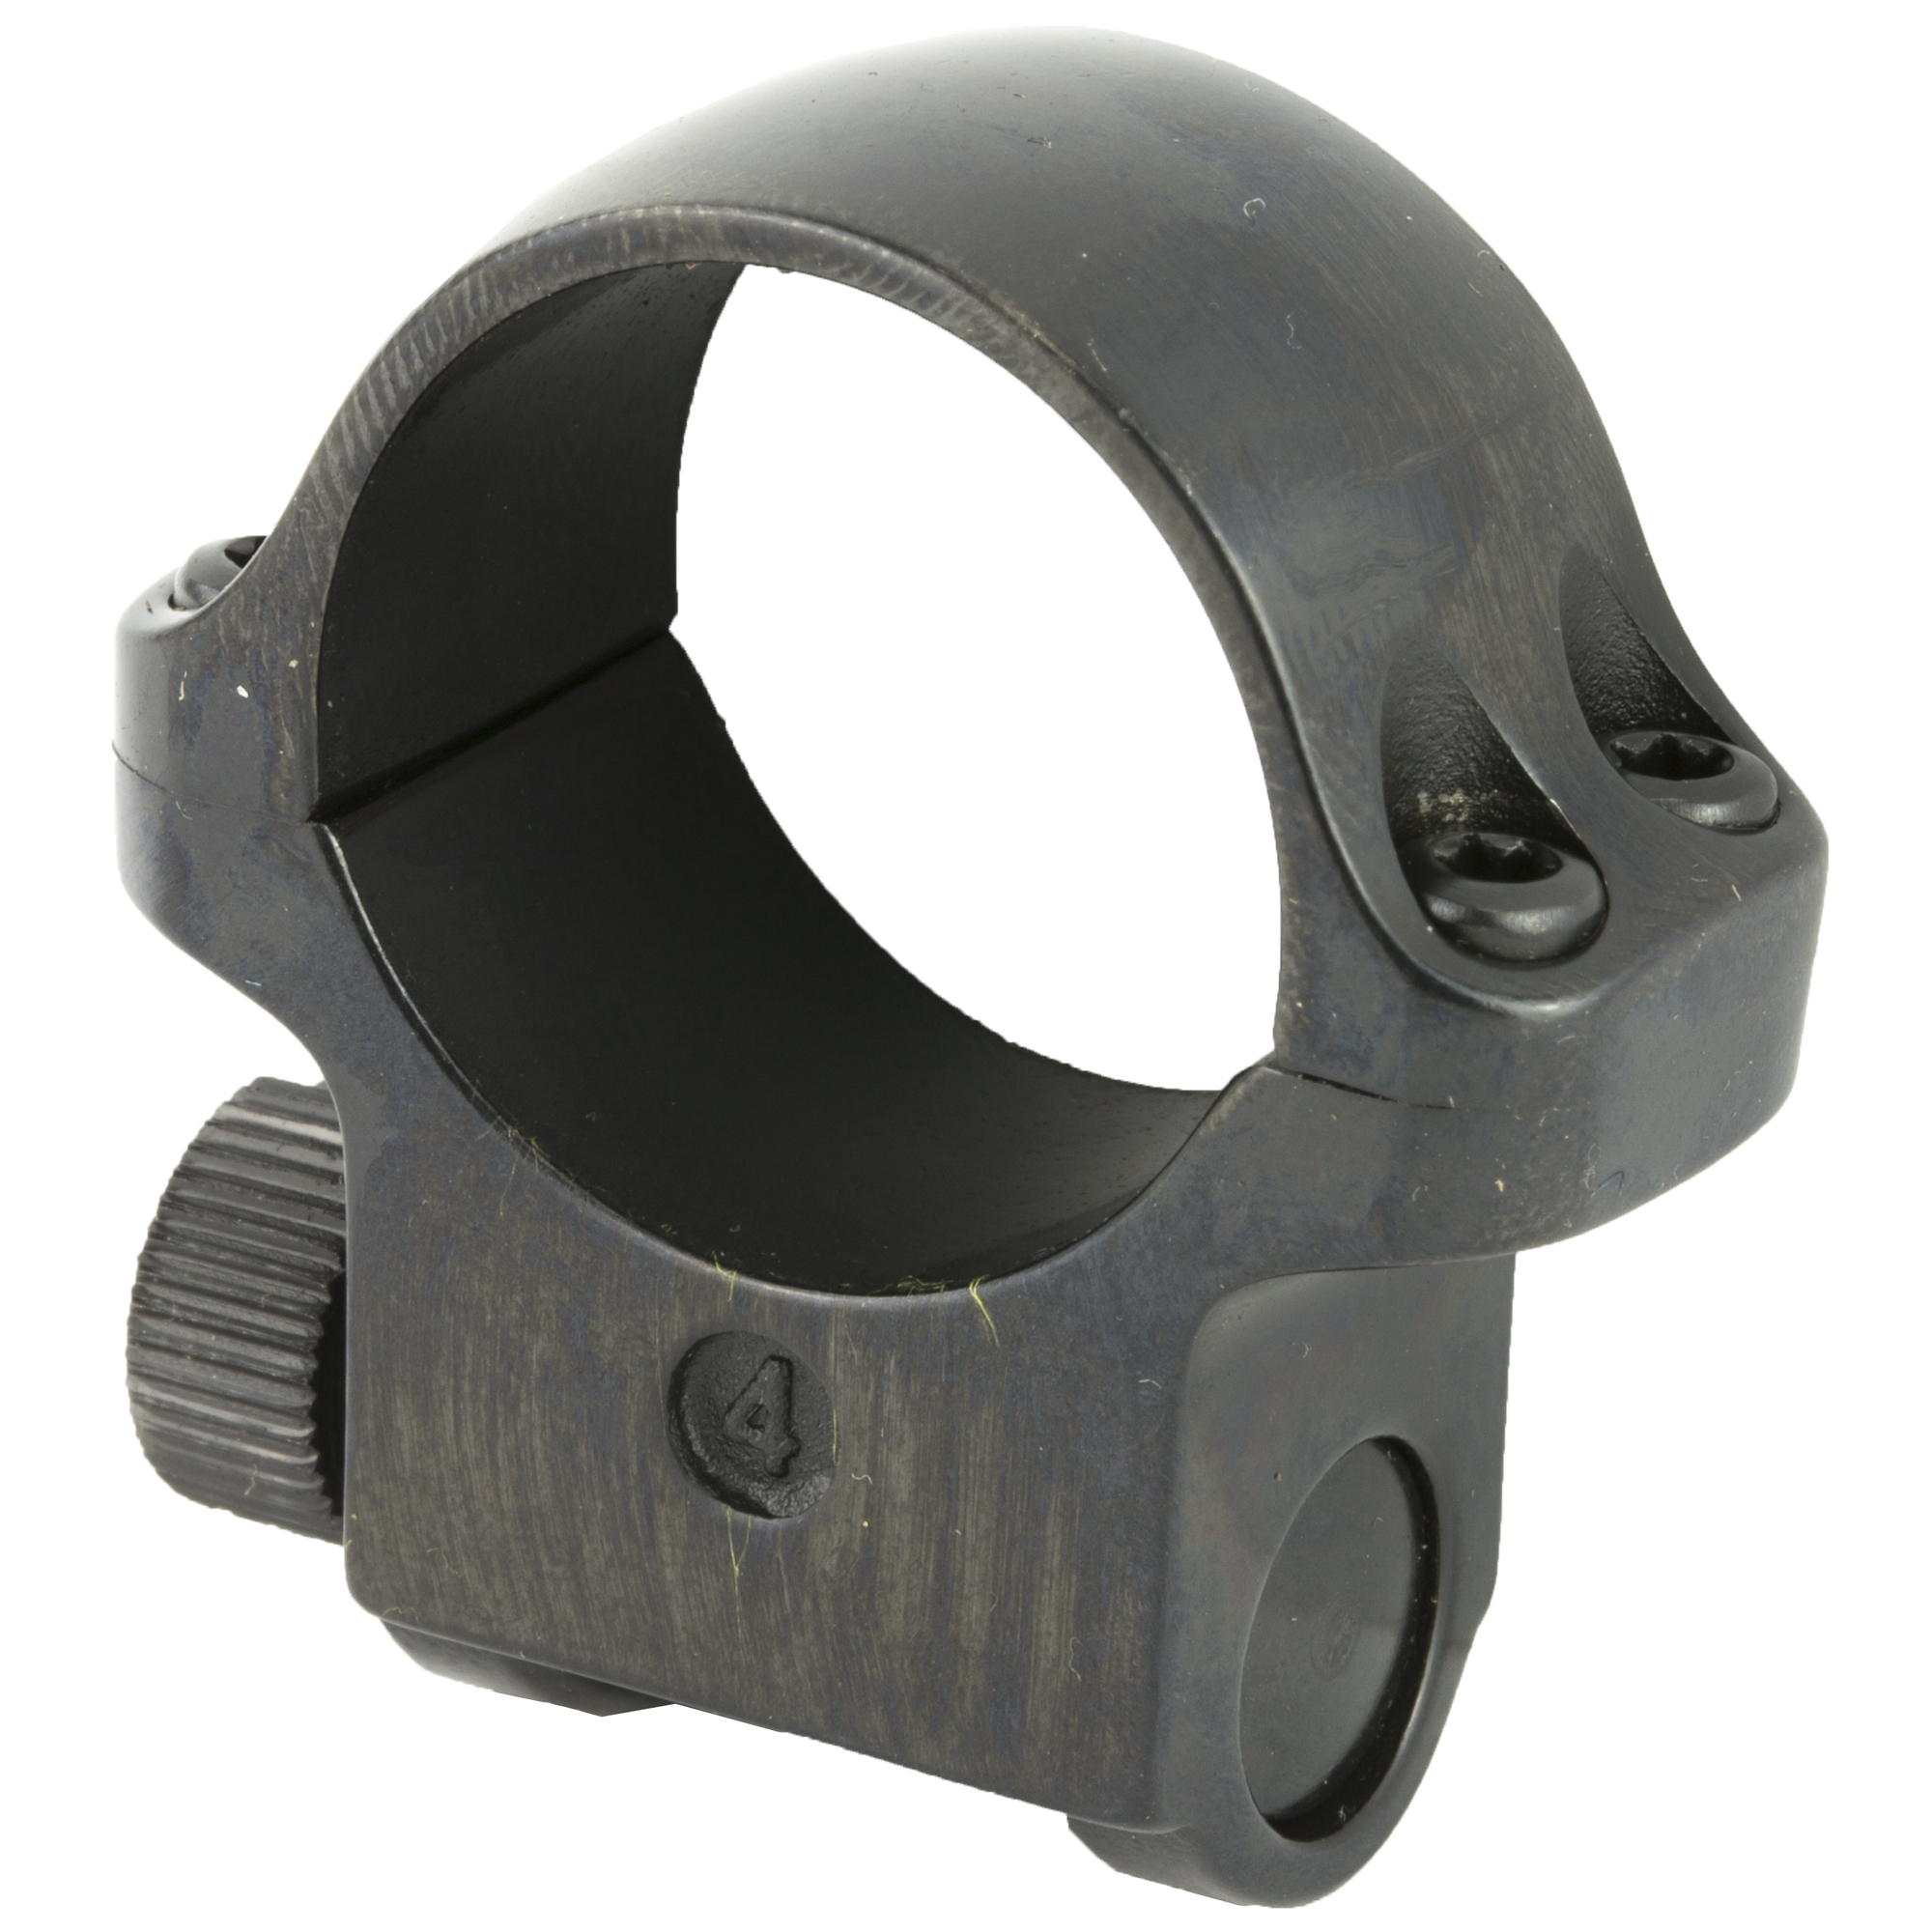 Medium Scope Ring with a Blued Finish. Designed to fit a scope with a one-inch scope tube diameter and a 42 MM objective diameter. Sold individually.